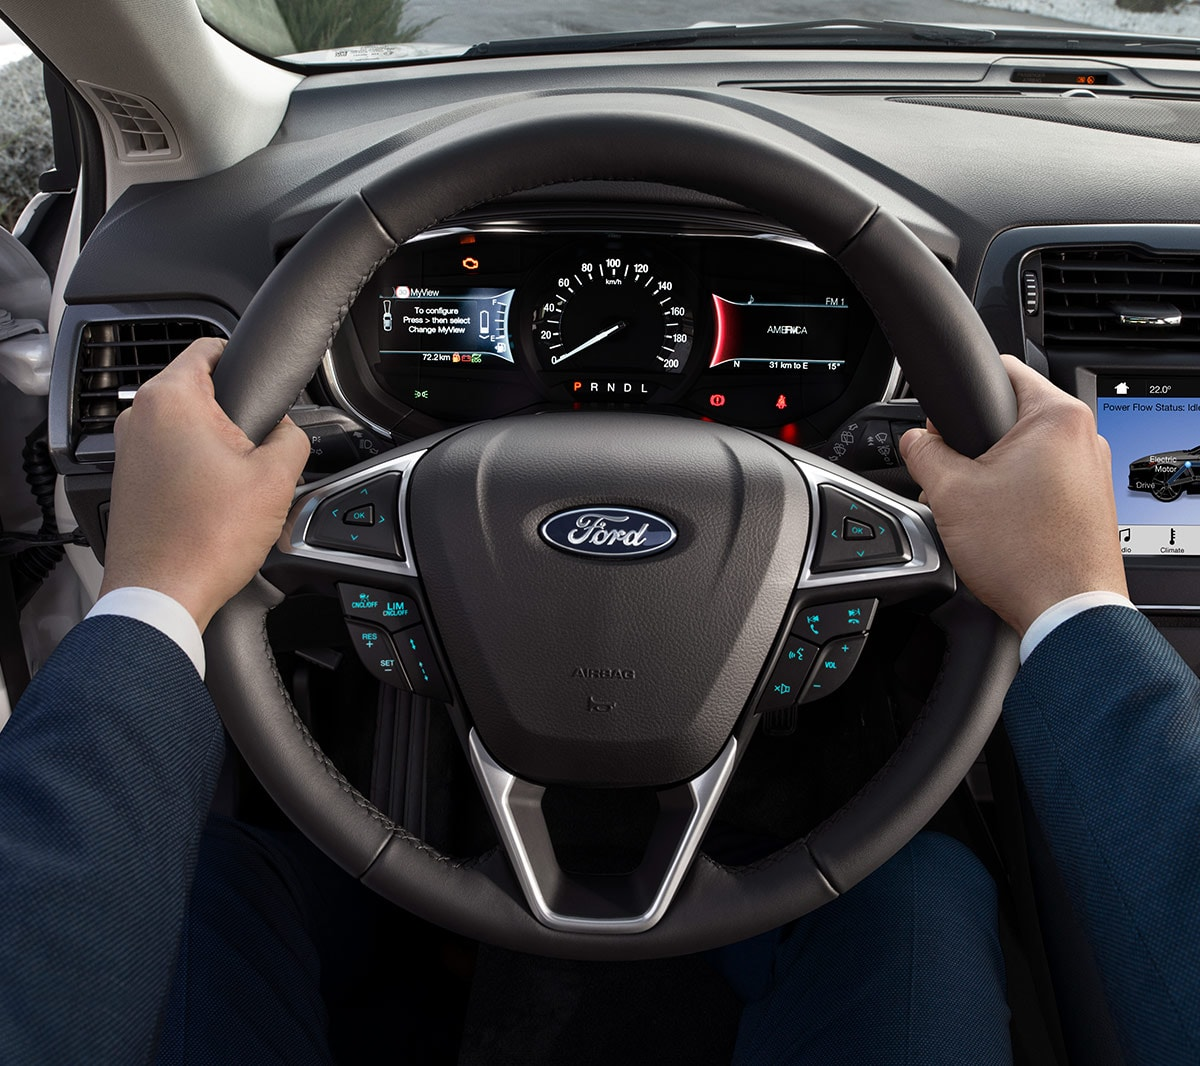 Ford Mondeo interior close up of hands with steering wheel and dashboard